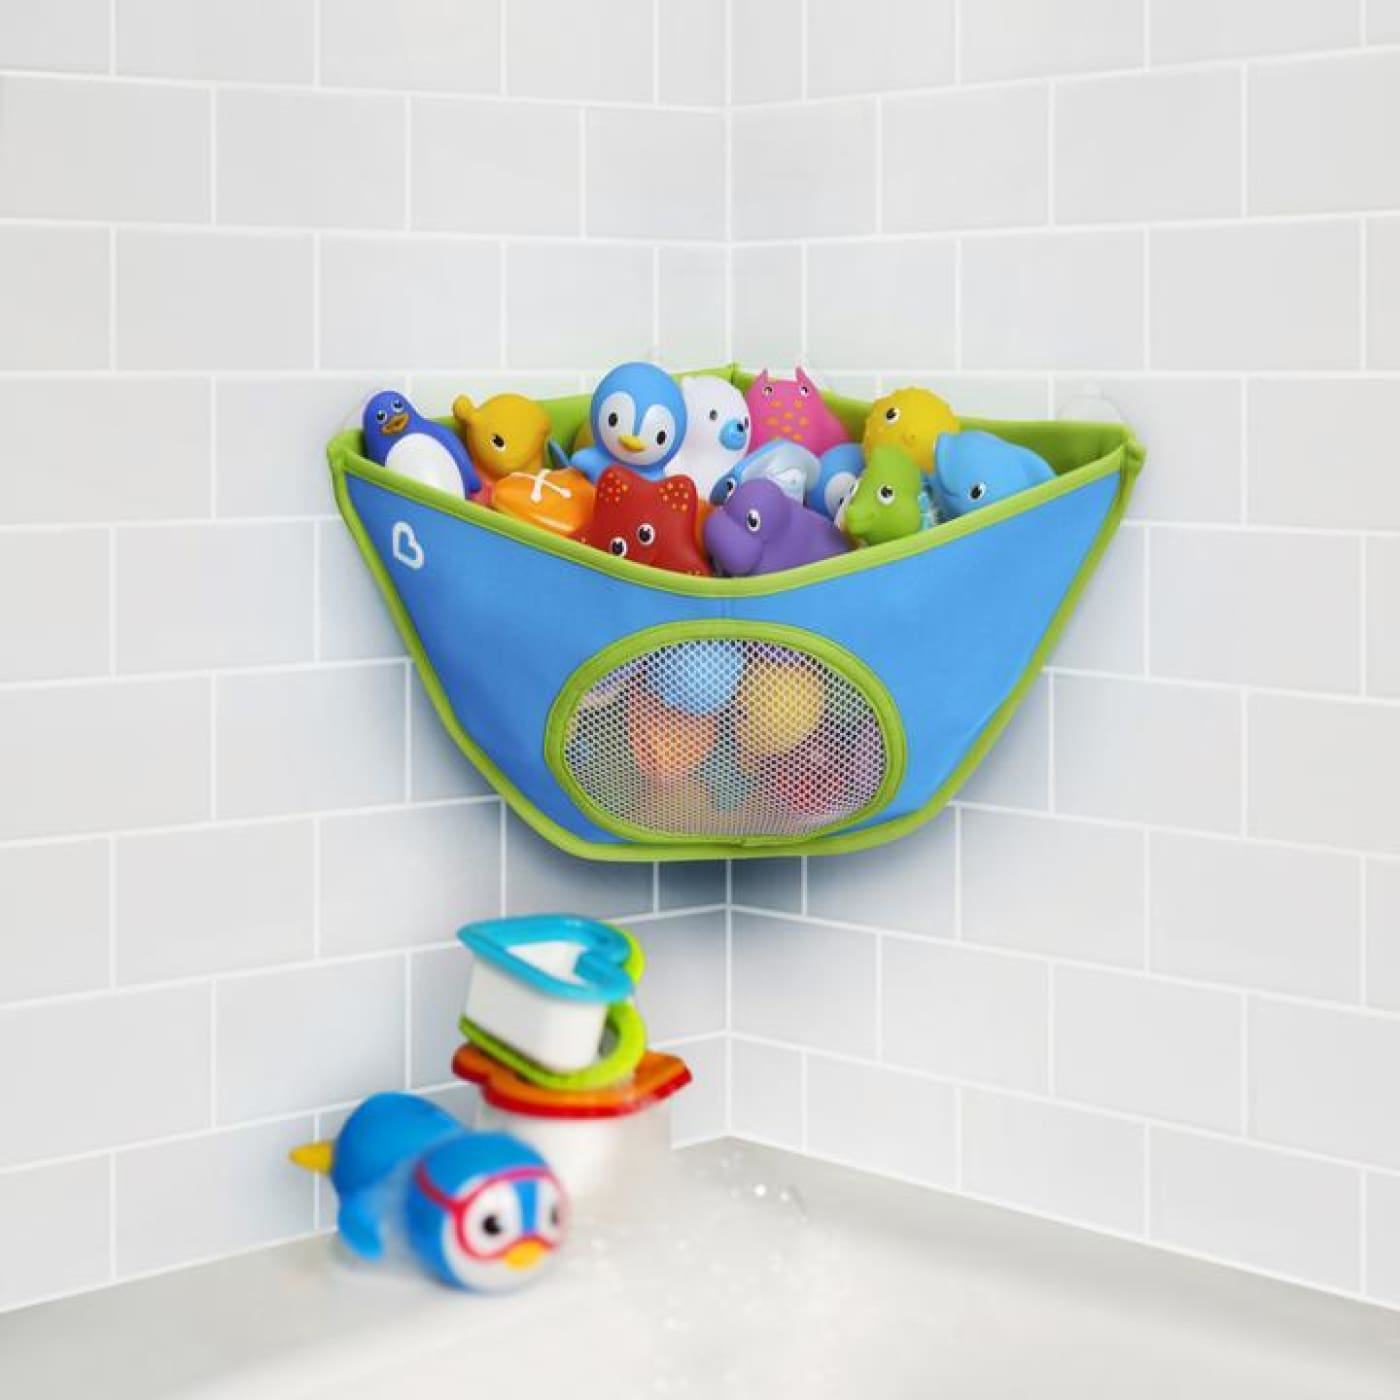 Munchkin Corner Bath Organiser - Blue/Green - BATHTIME & CHANGING - BATH TOYS/AIDS